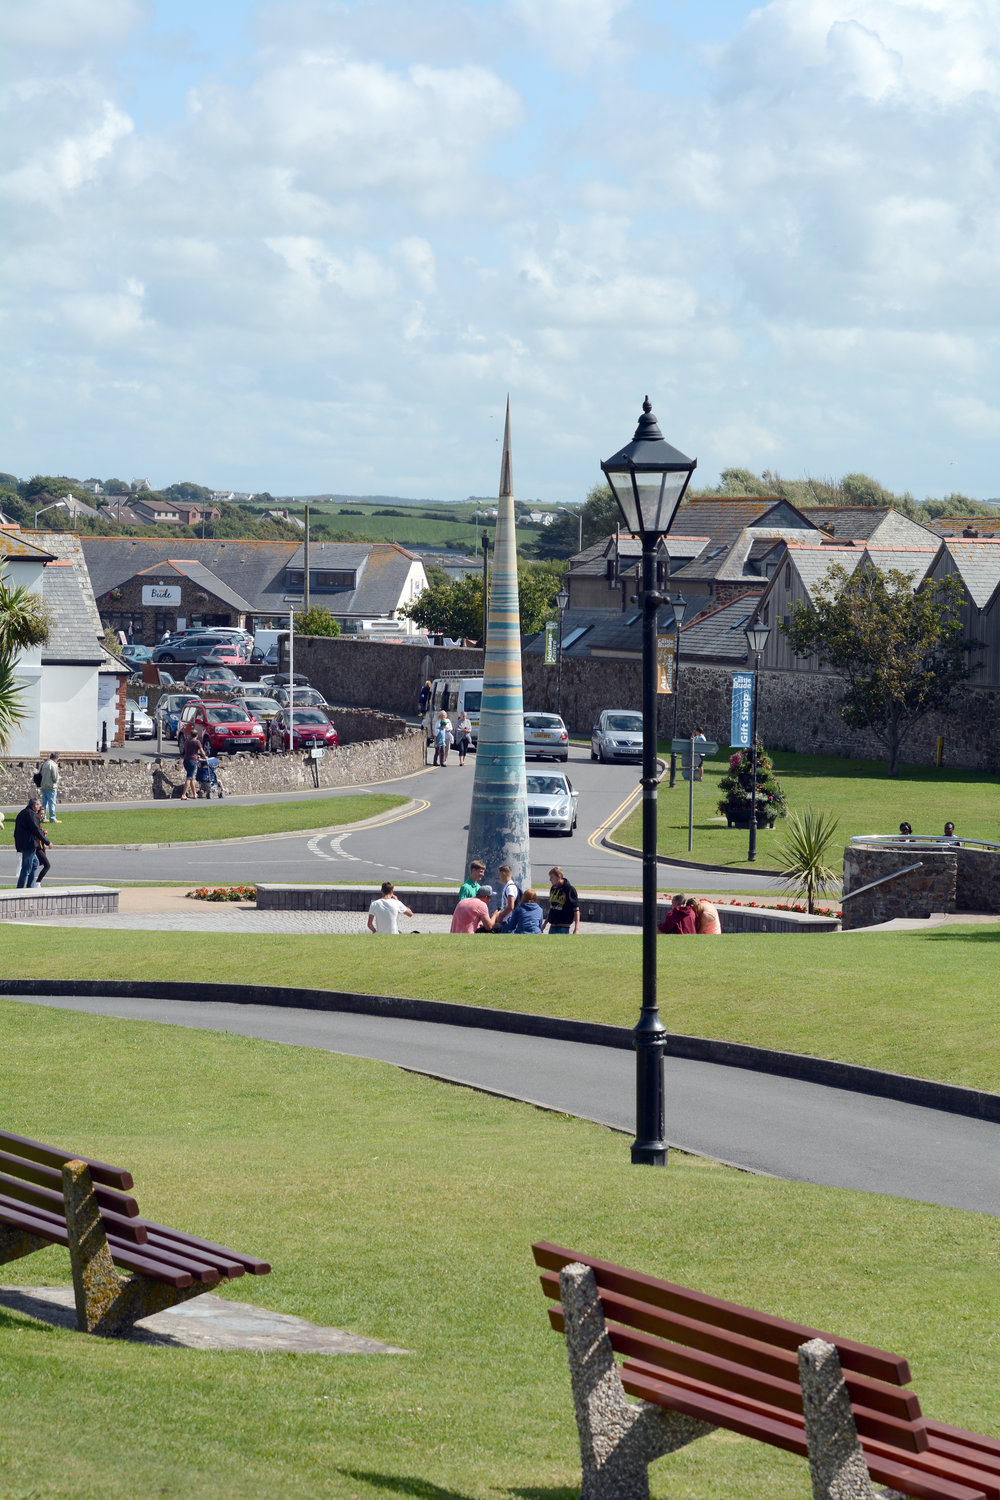 The seaside town of Bude and it's Bude Light, just two miles away.